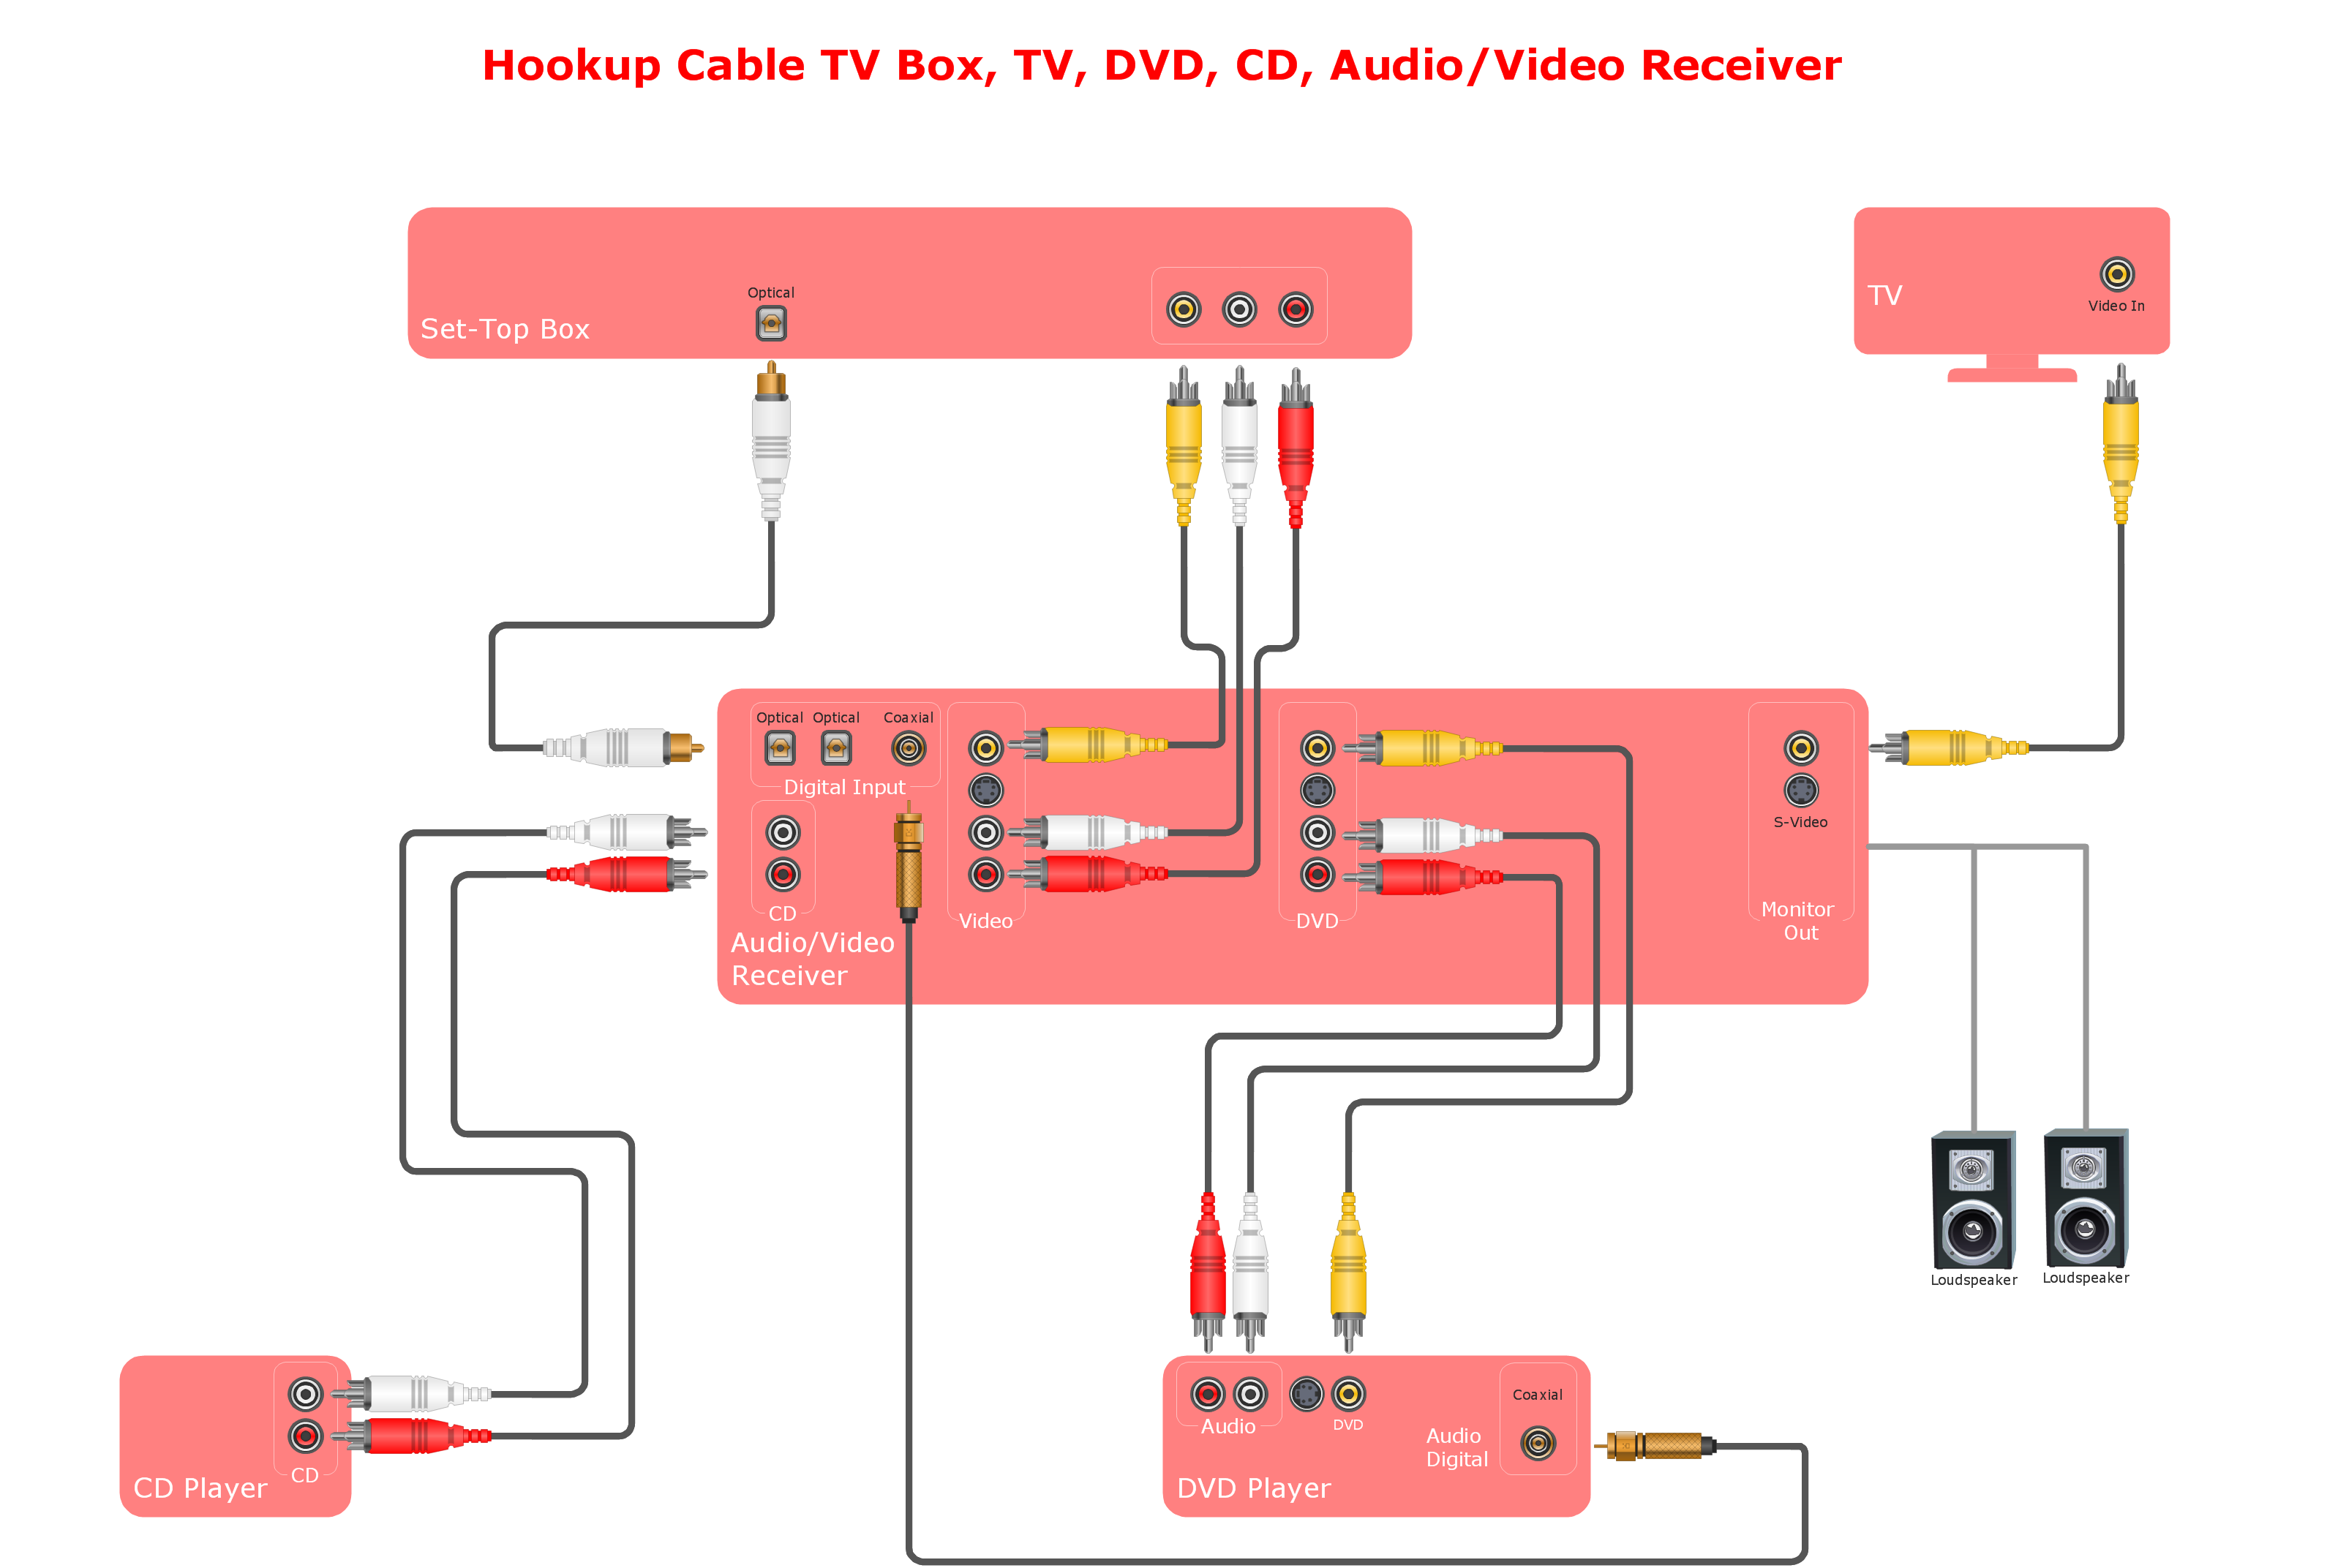 Av Wiring Software All Kind Of Diagrams Bmw Stereo Harness Audio And Video Connections Explained Connector Rh Conceptdraw Com Diagram